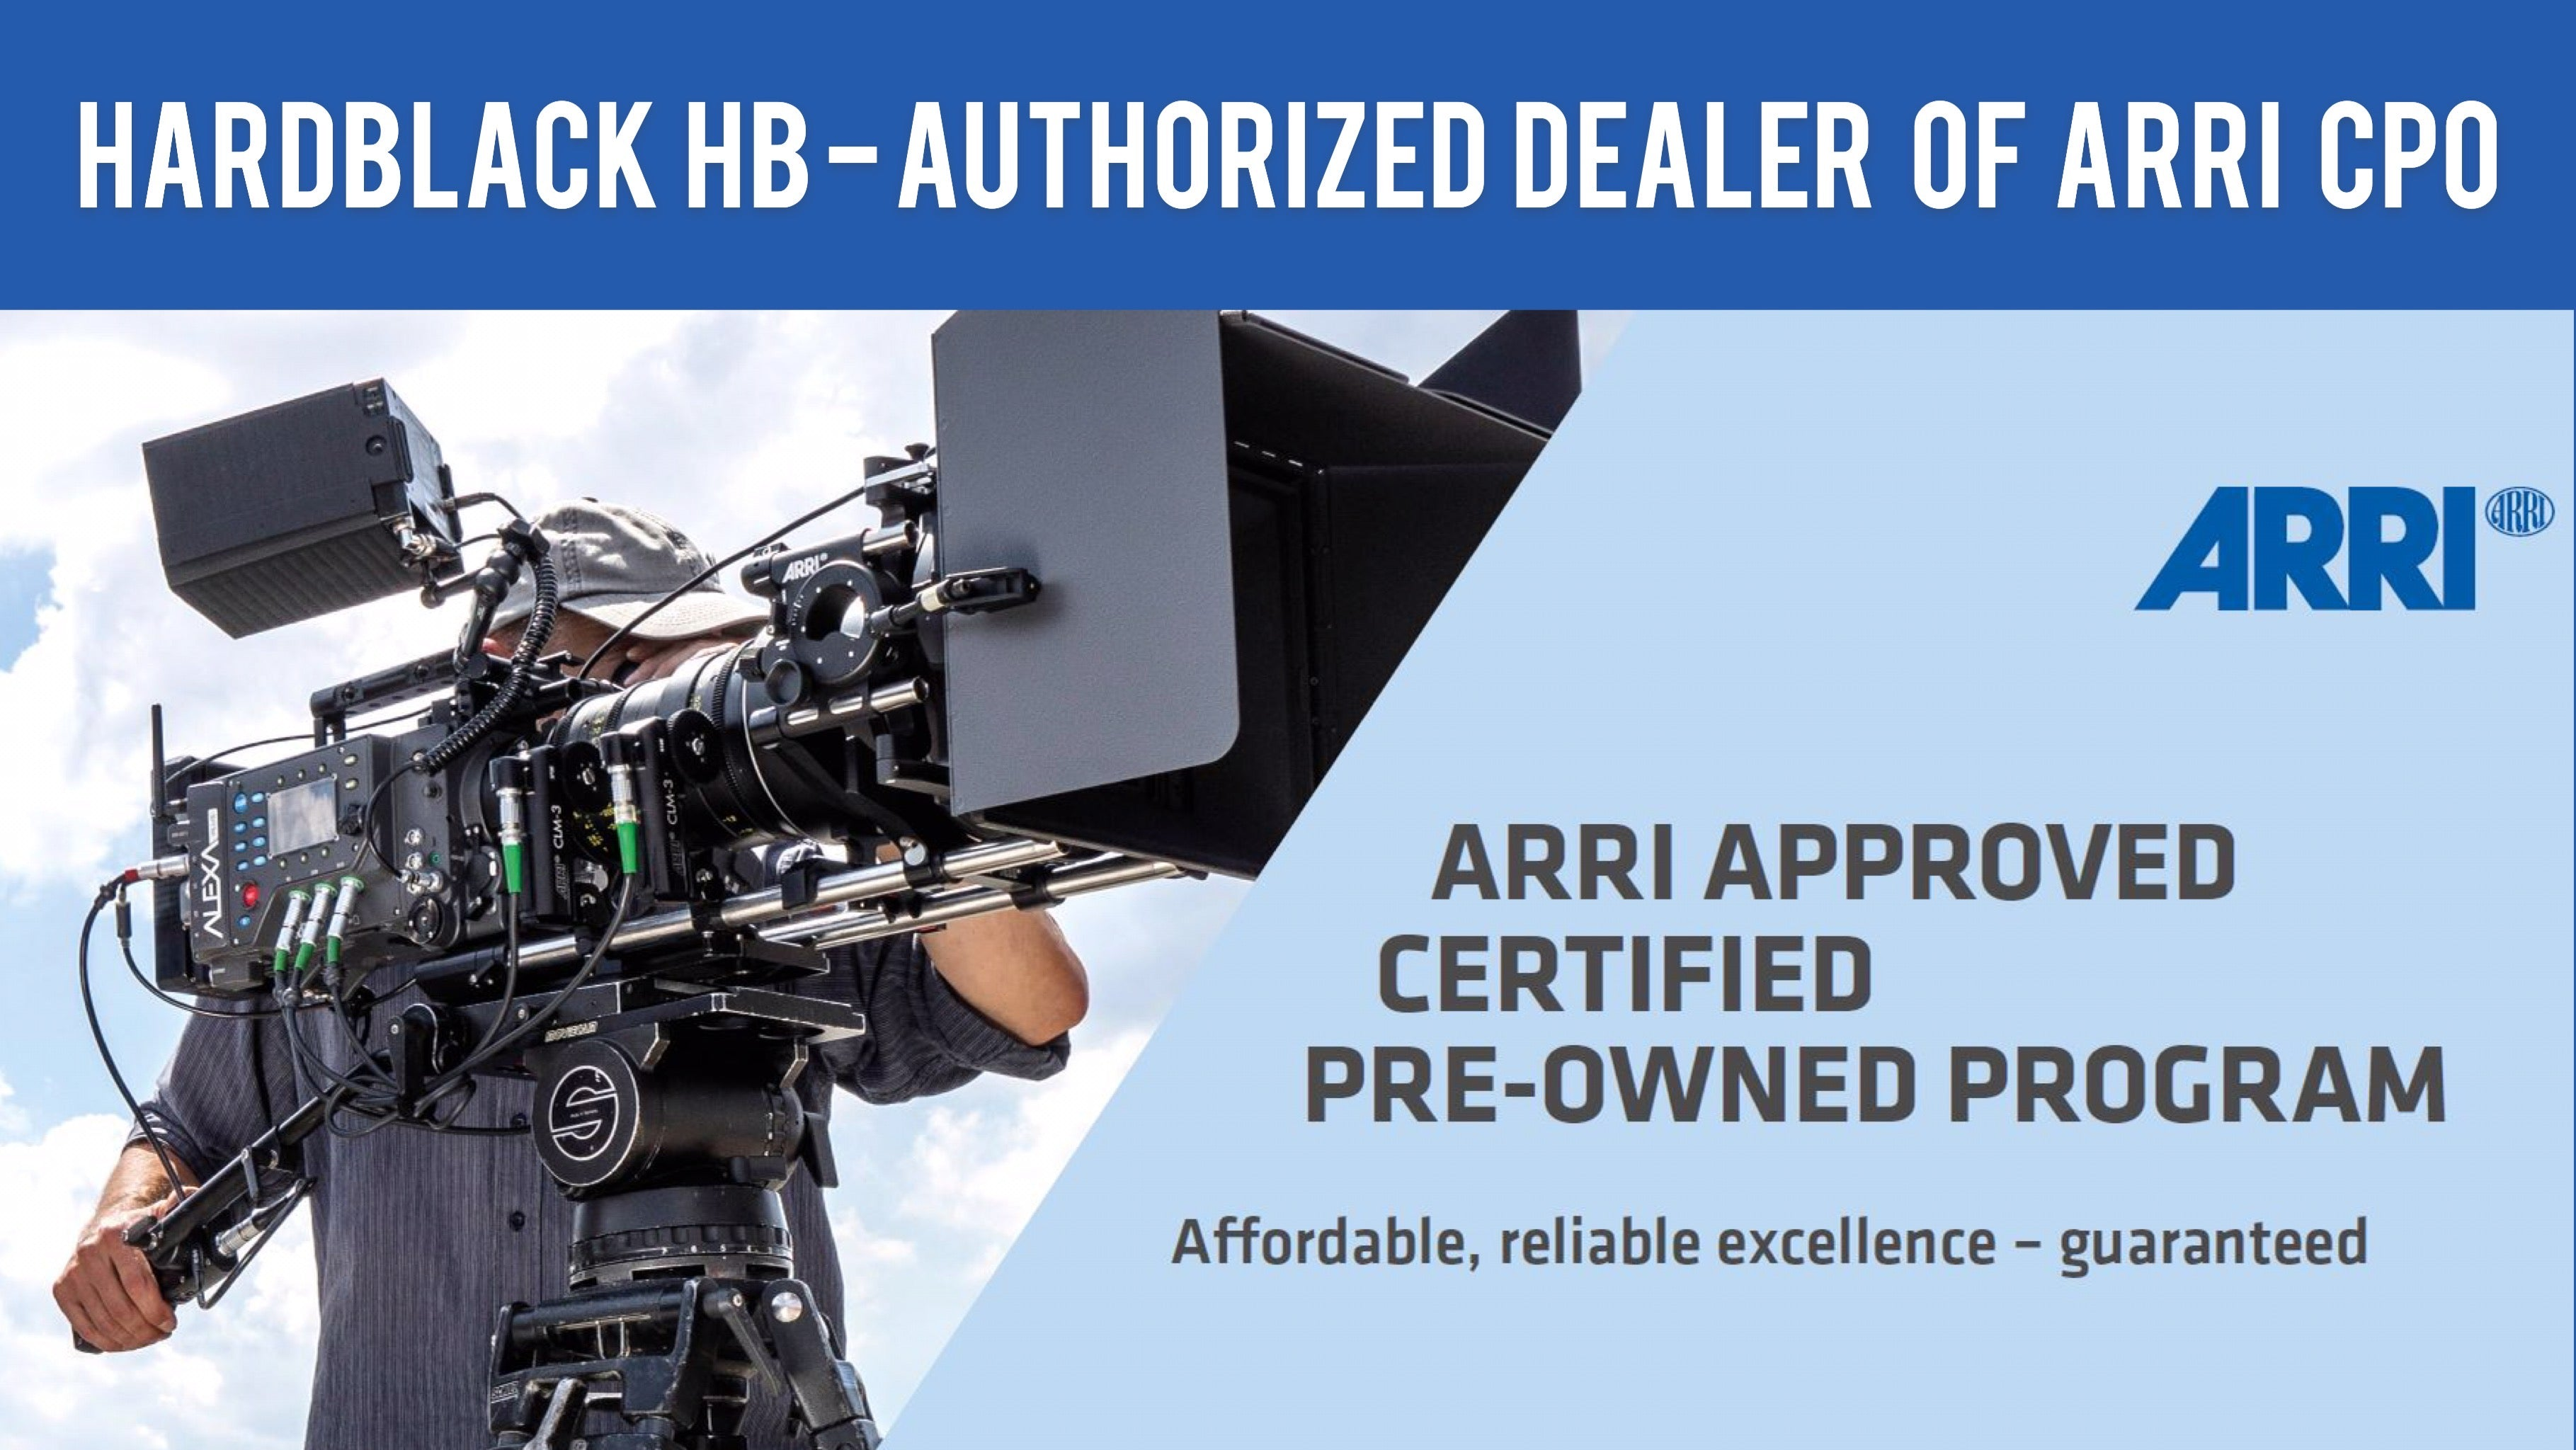 Arri CPO program with HARDBLACK HK